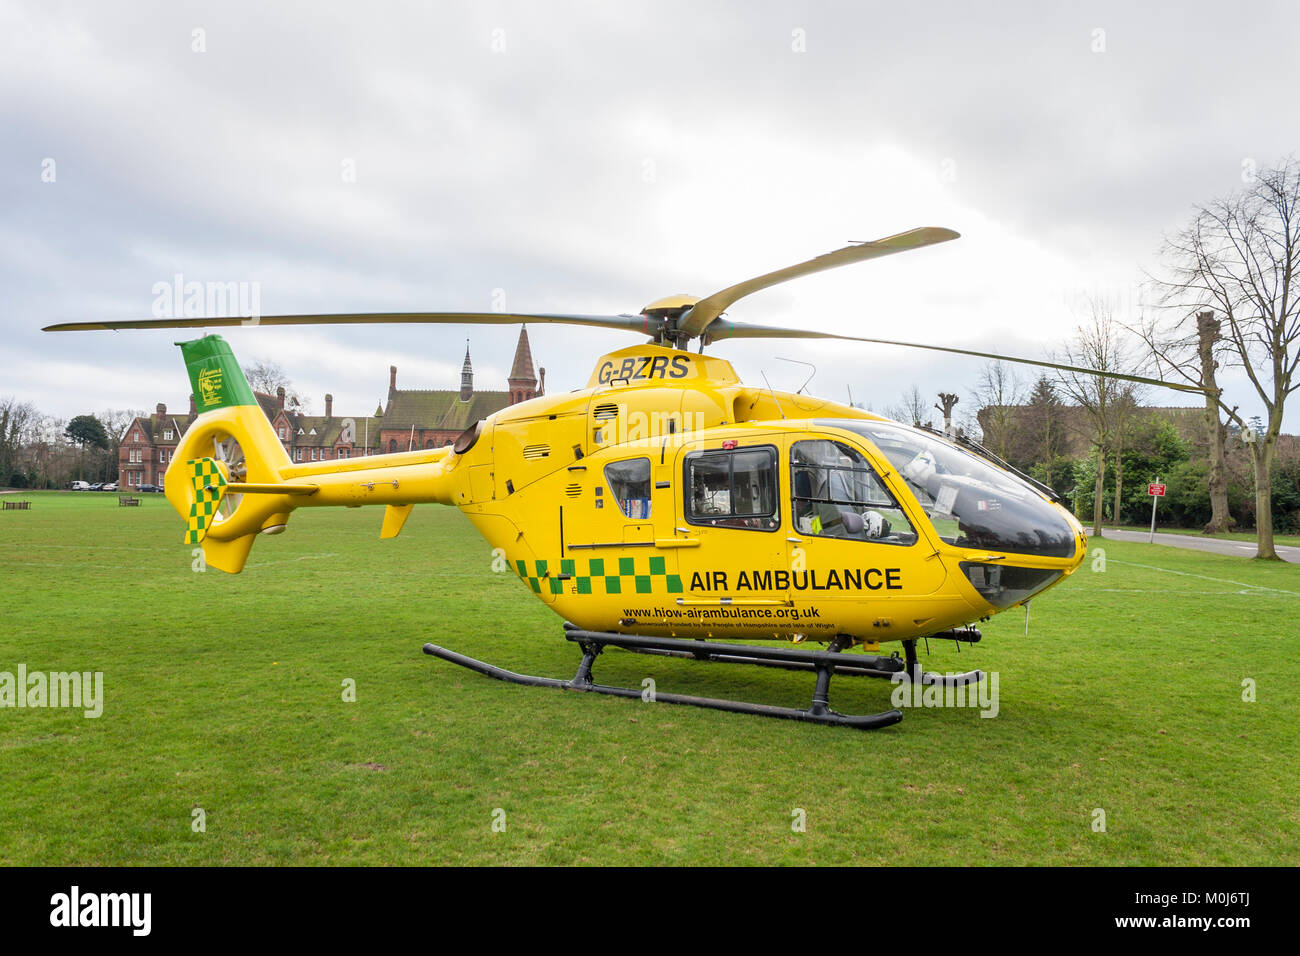 The Hampshire and Isle of Wight Air Ambulance helicopter, Eurocopter EC135, at Reading School to transfer a patient Stock Photo